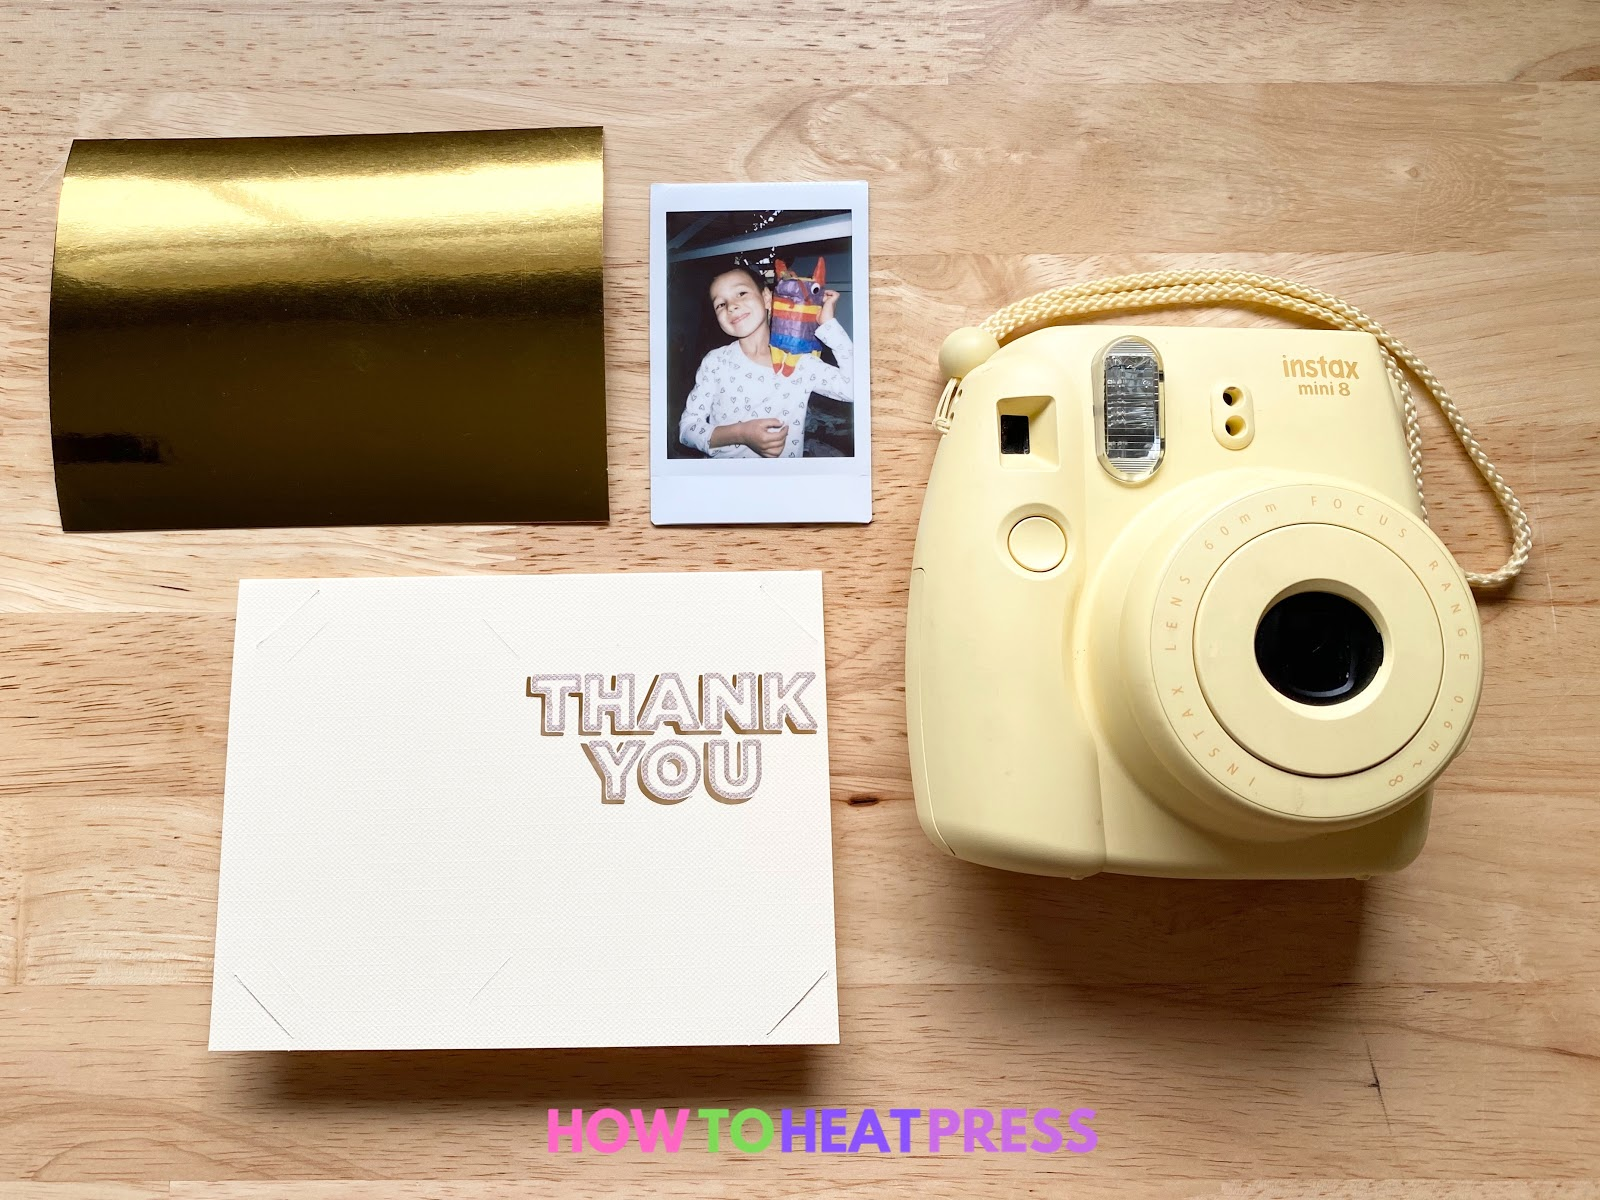 yellow fujifilm instax camera and photo with cream and gold diy thank you card